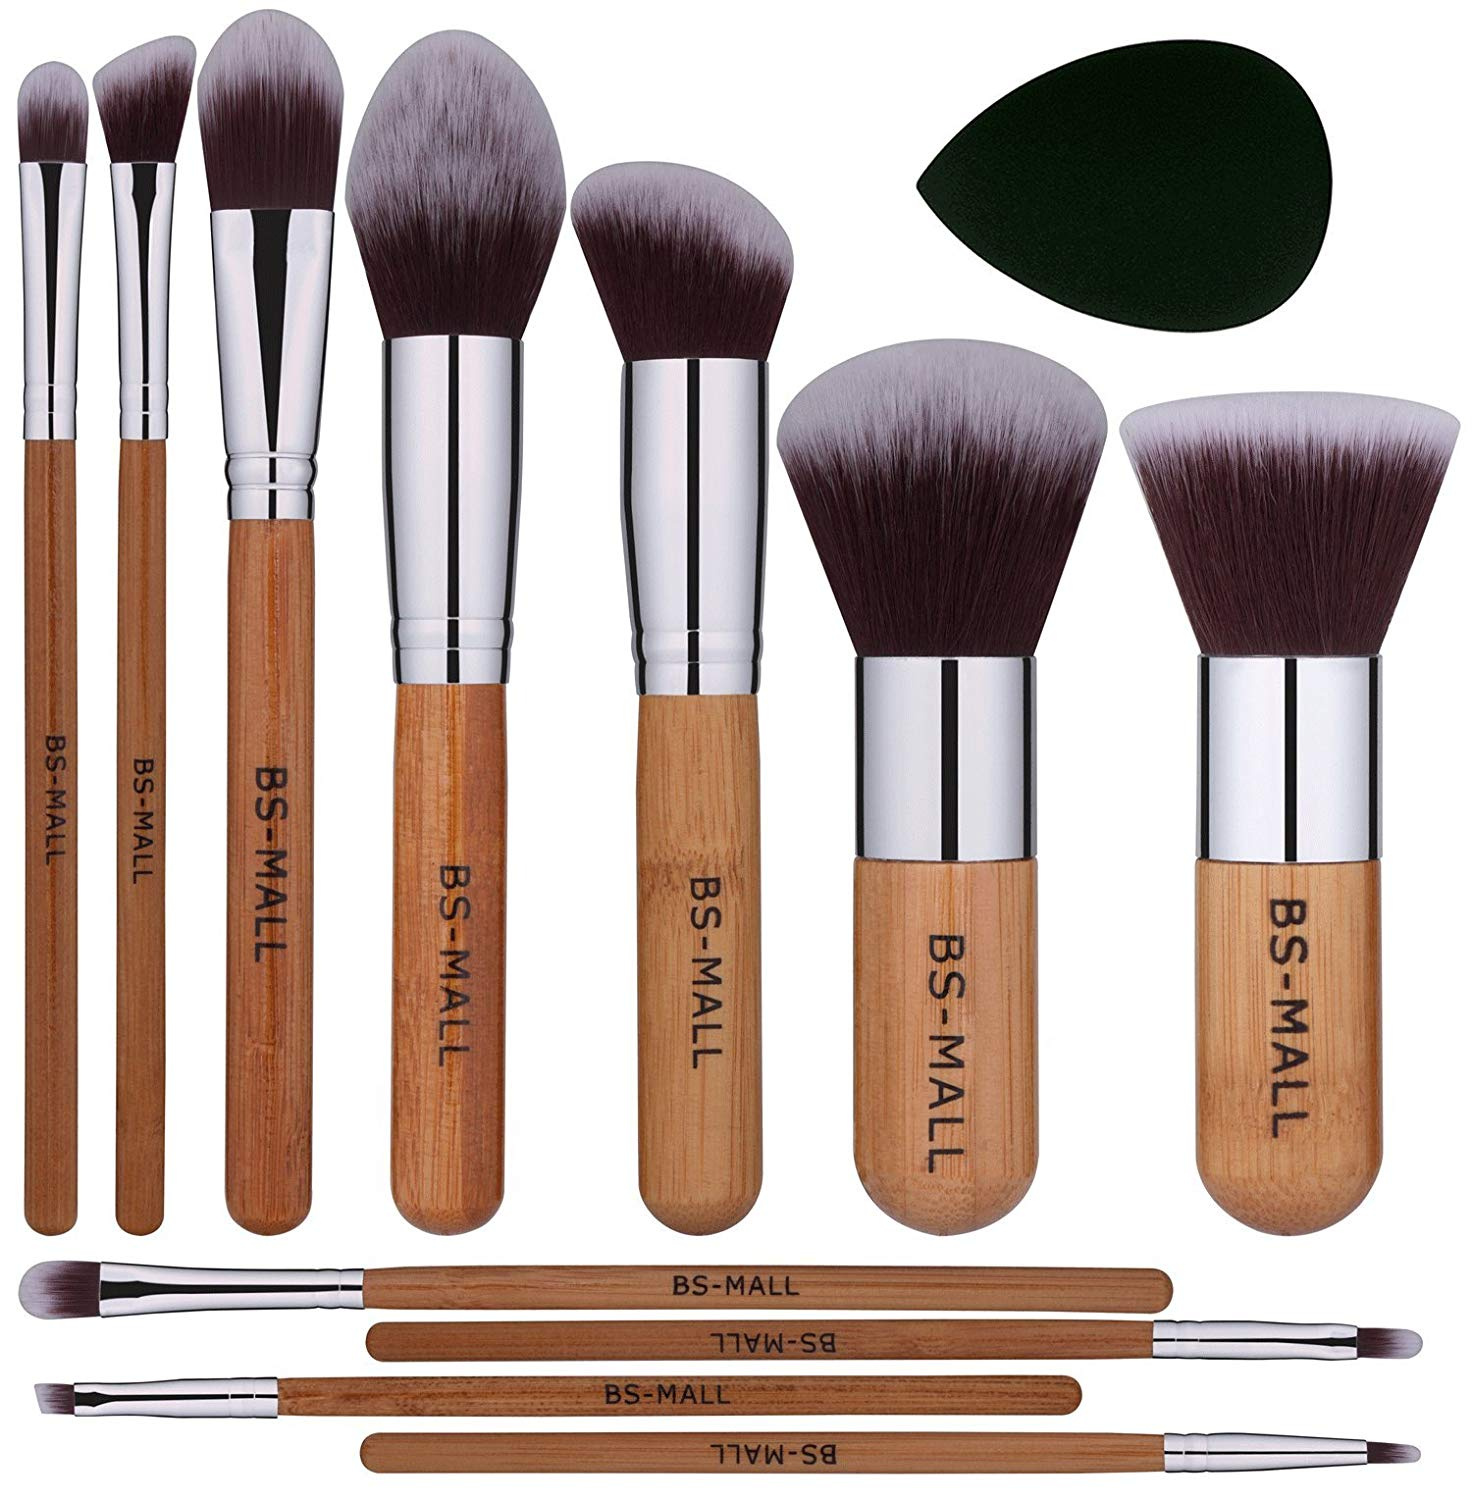 a08060b39af9 BS Mall bamboo Silver Premium Synthetic Kabuki Makeup Brush Set Cosmetics  Foundation Blending Blush Face Powder Brush Makeup Brush Kit with Black  Tear ...